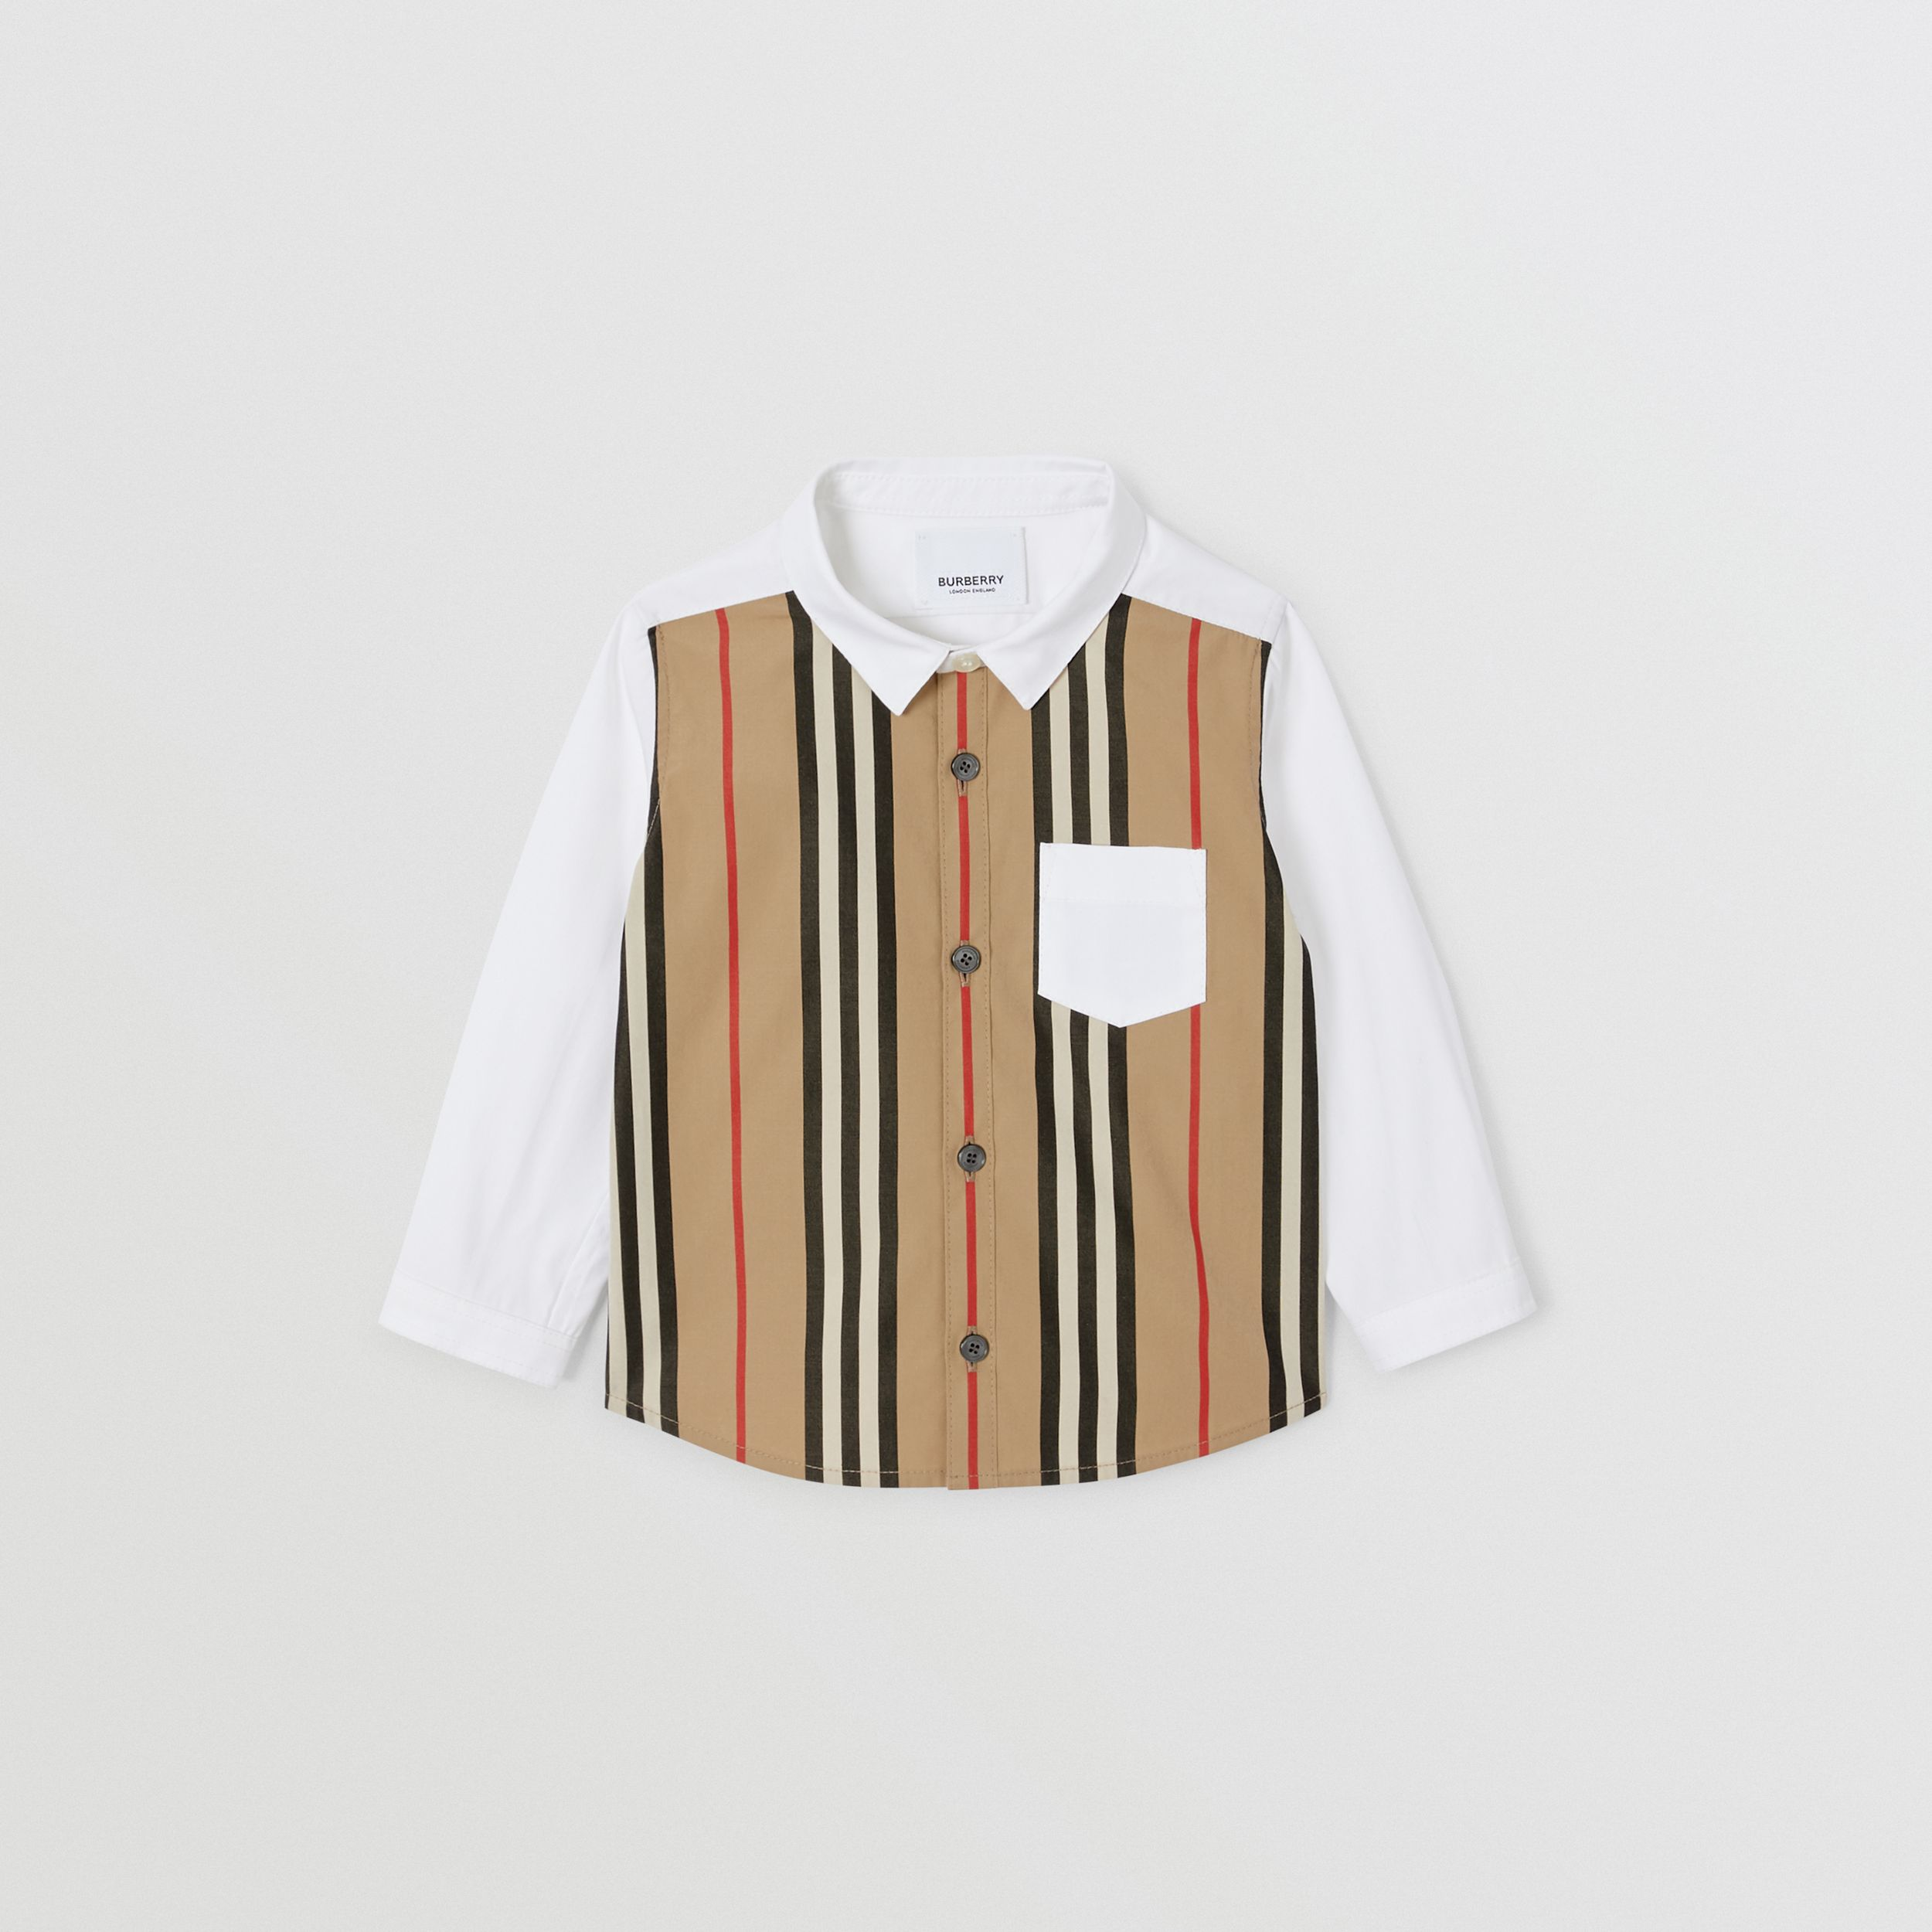 Icon Stripe Panel Stretch Cotton Shirt in White - Children | Burberry - 1